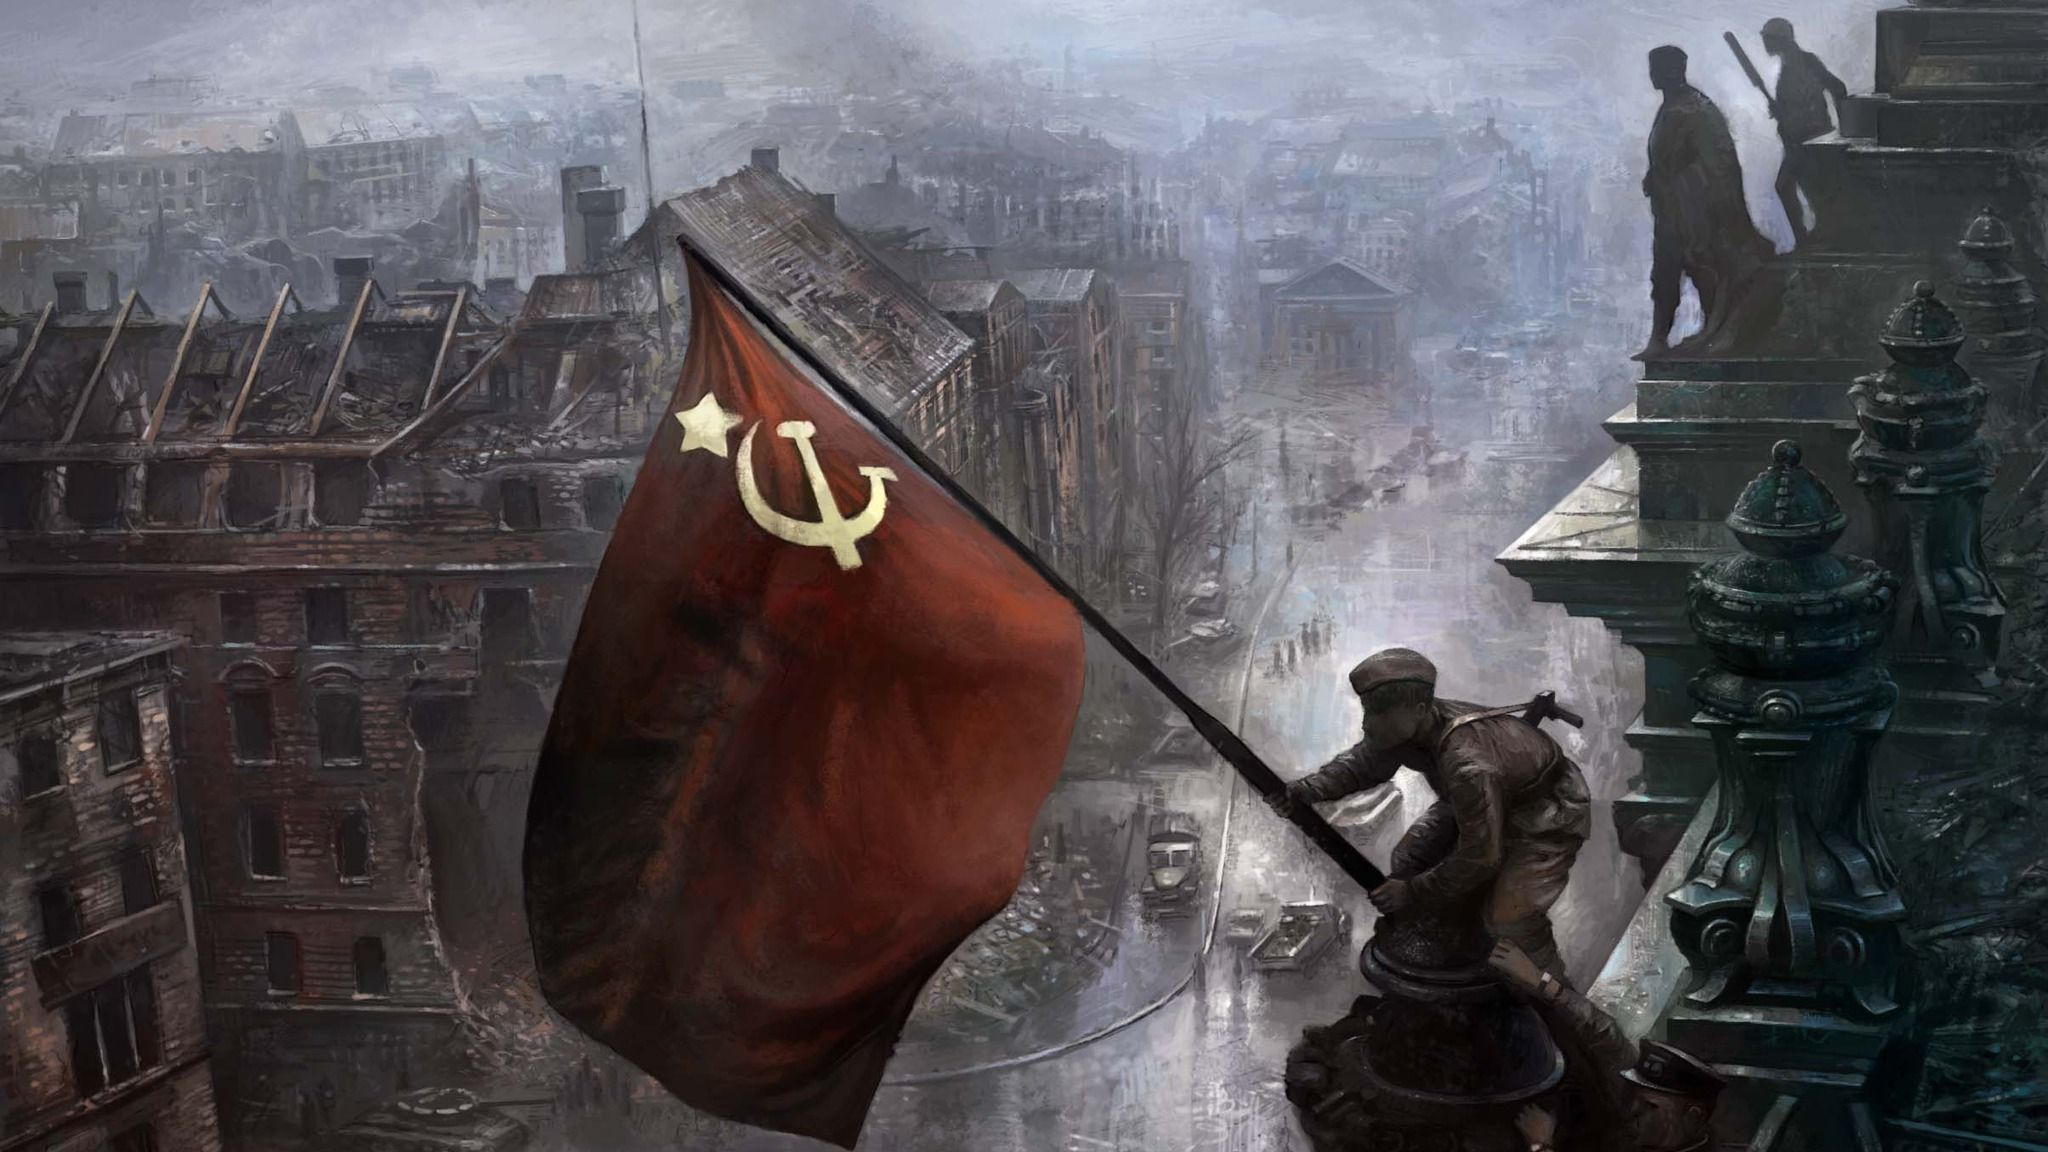 Ussr flag wallpaper soviet union w soviet union berlin - Ussr wallpaper ...